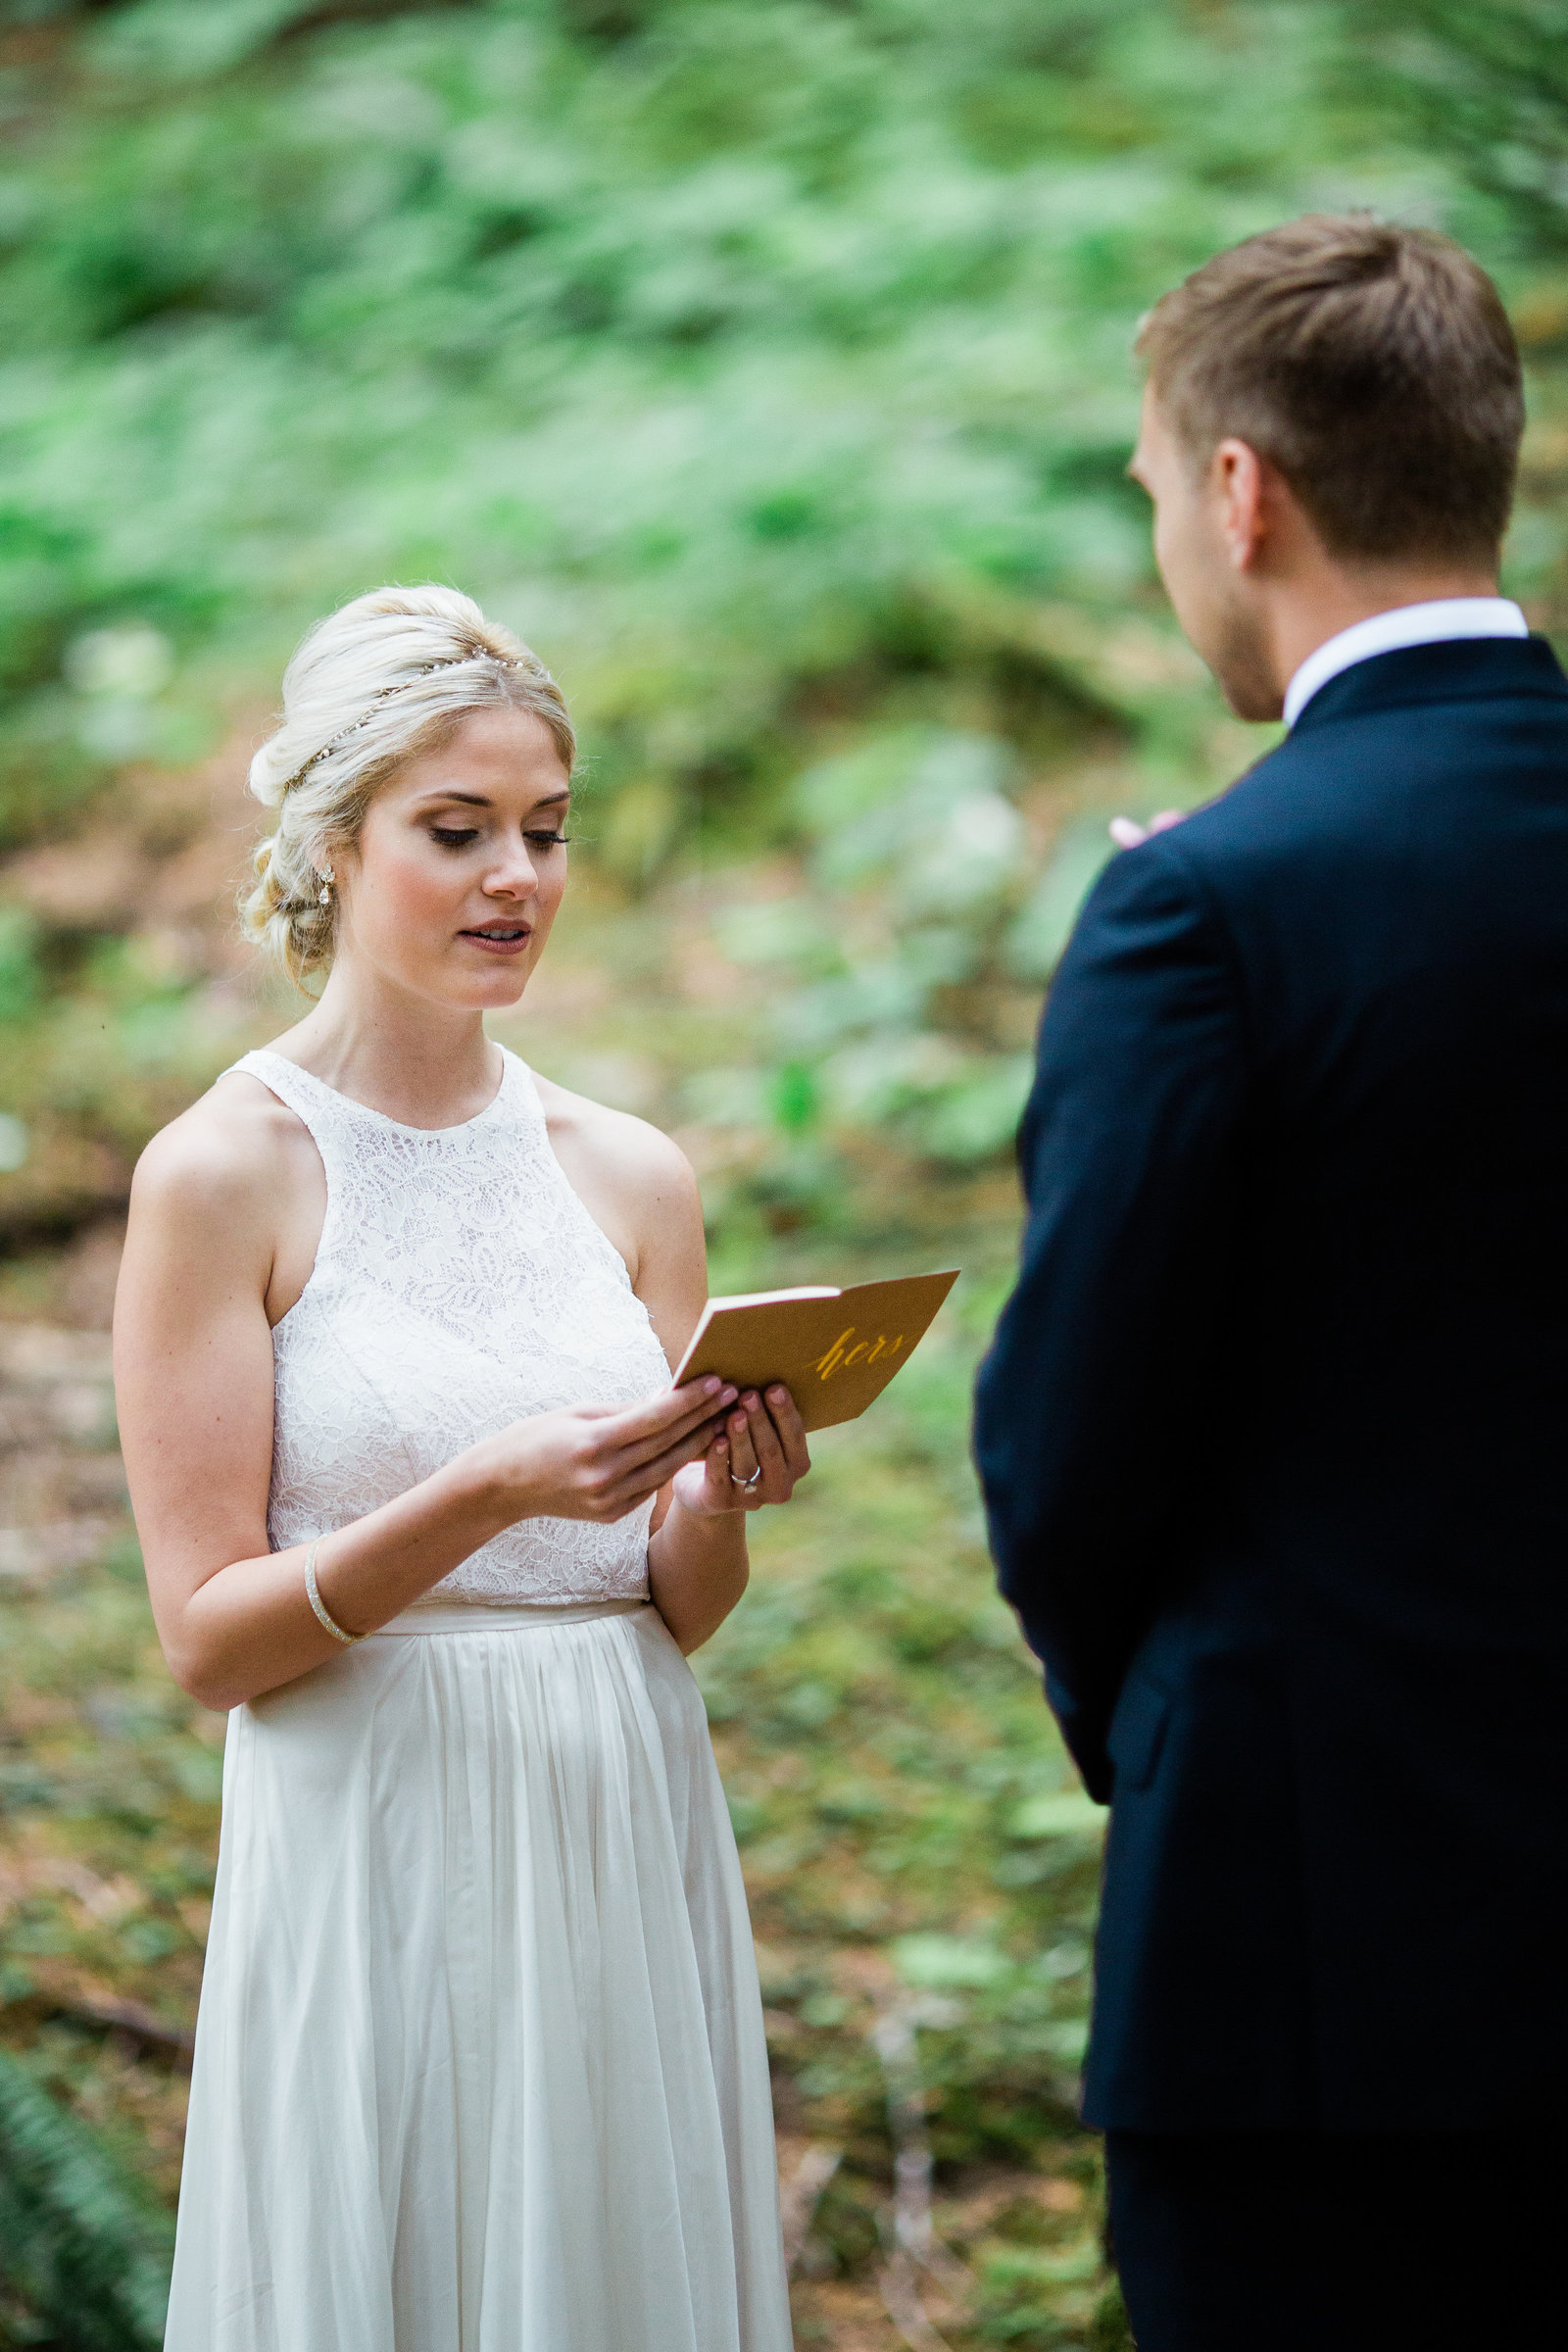 mount-rainier-national-park-elopement-cameron-zegers-photographer-seattle-84